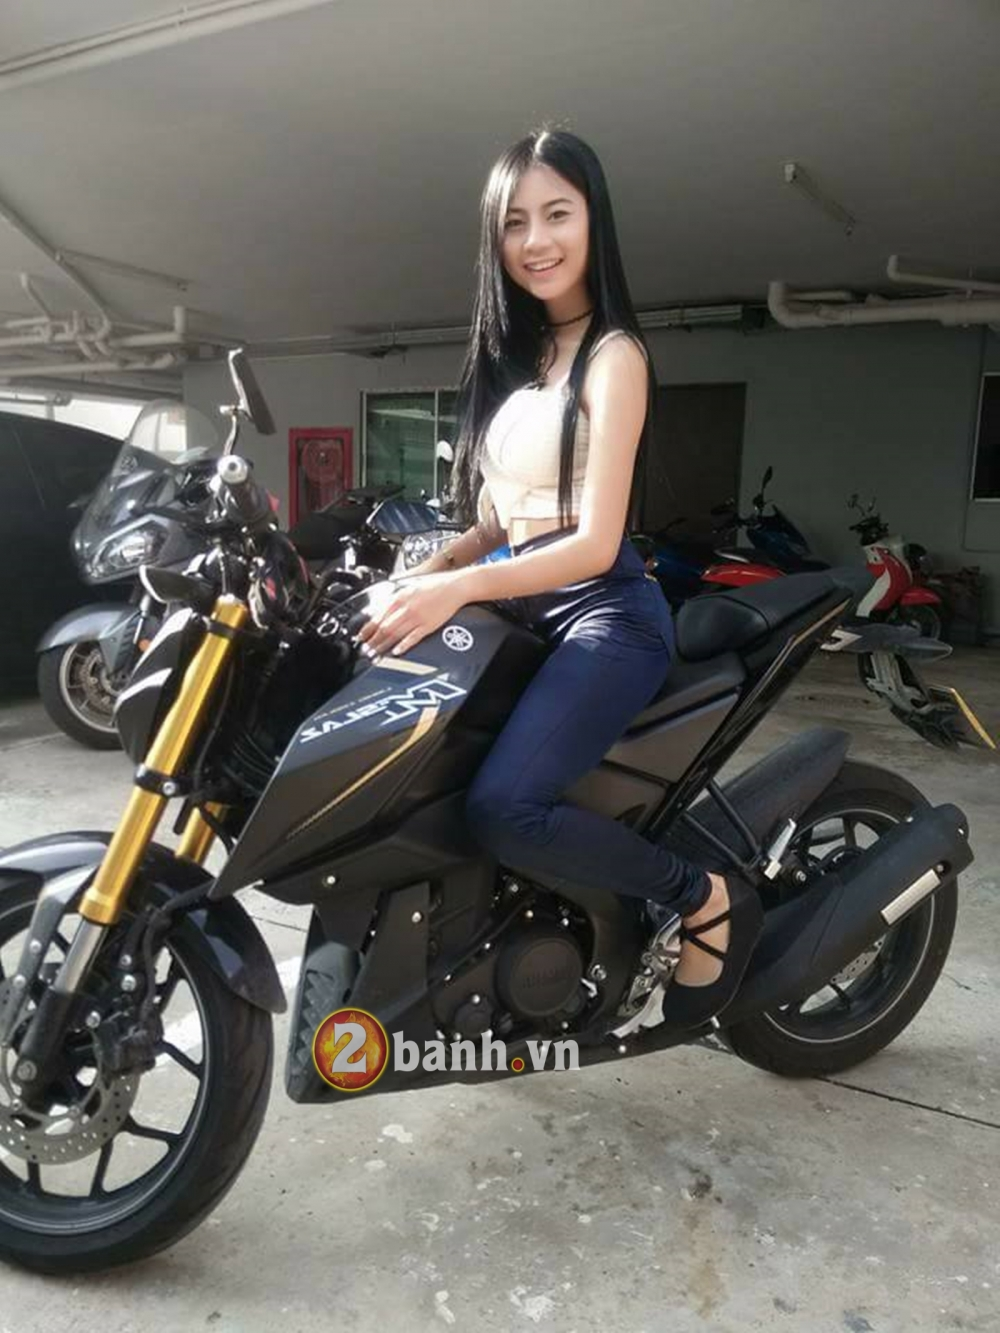 Me man cung Hot Girl Thai do dang cung Yamaha MSlaz - 4